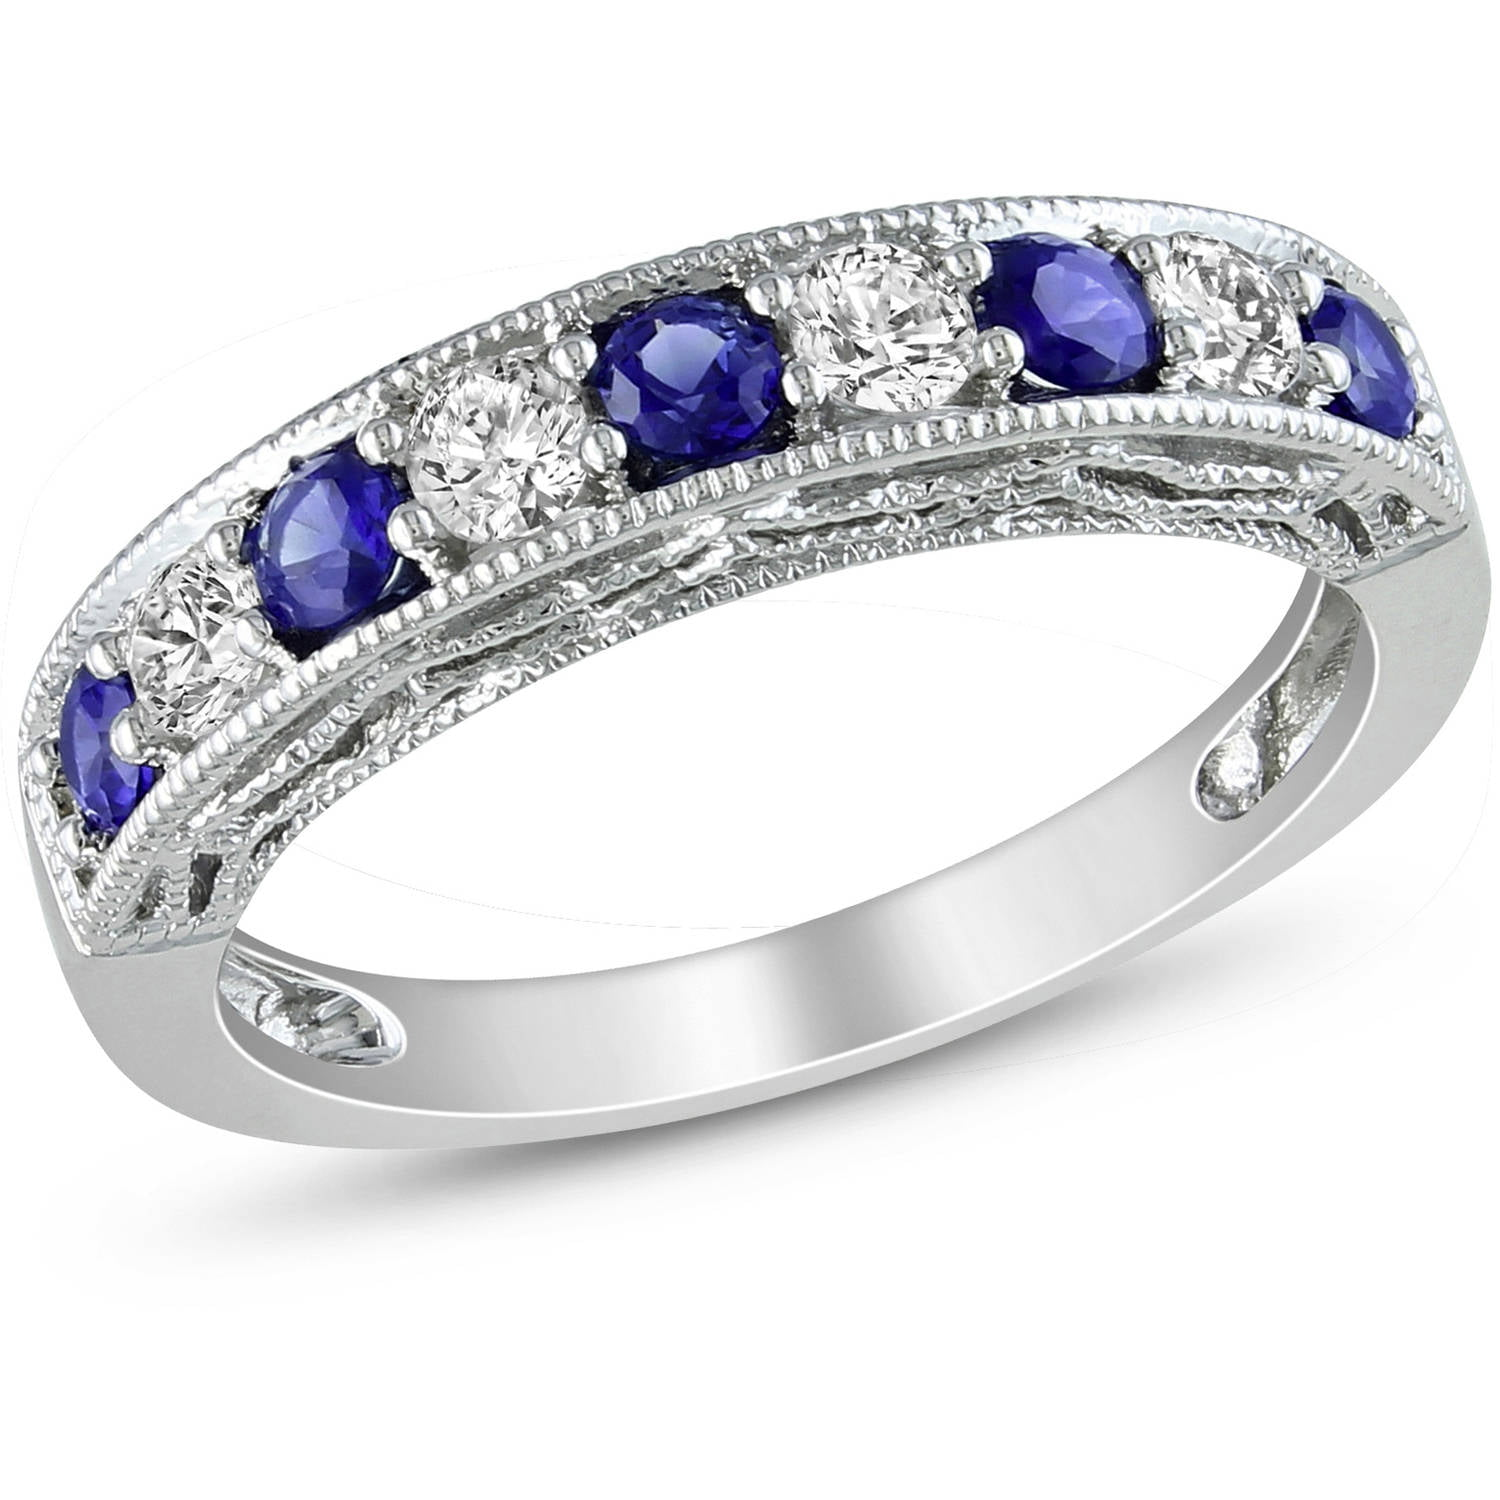 Tangelo 7 8 Carat T G W Created Blue and White Sapphire Sterling